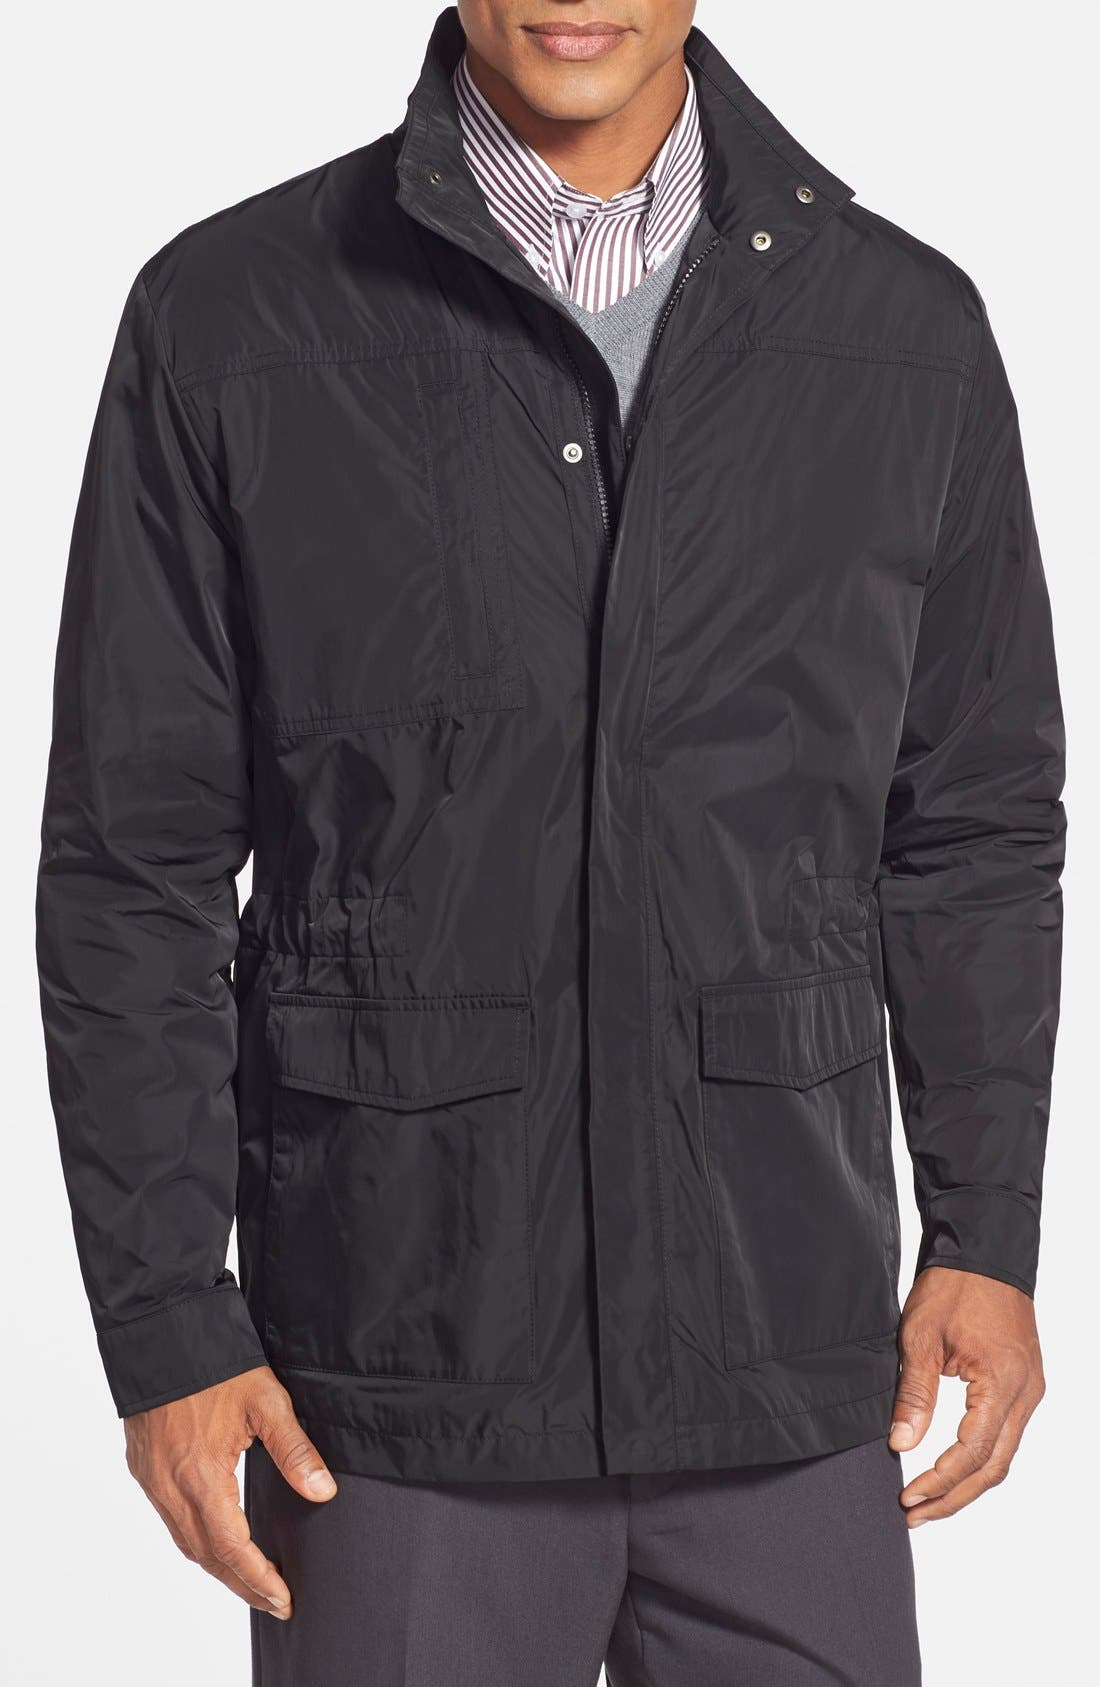 Cutter & Buck Birch Bay Water Resistant Jacket (Online Only)